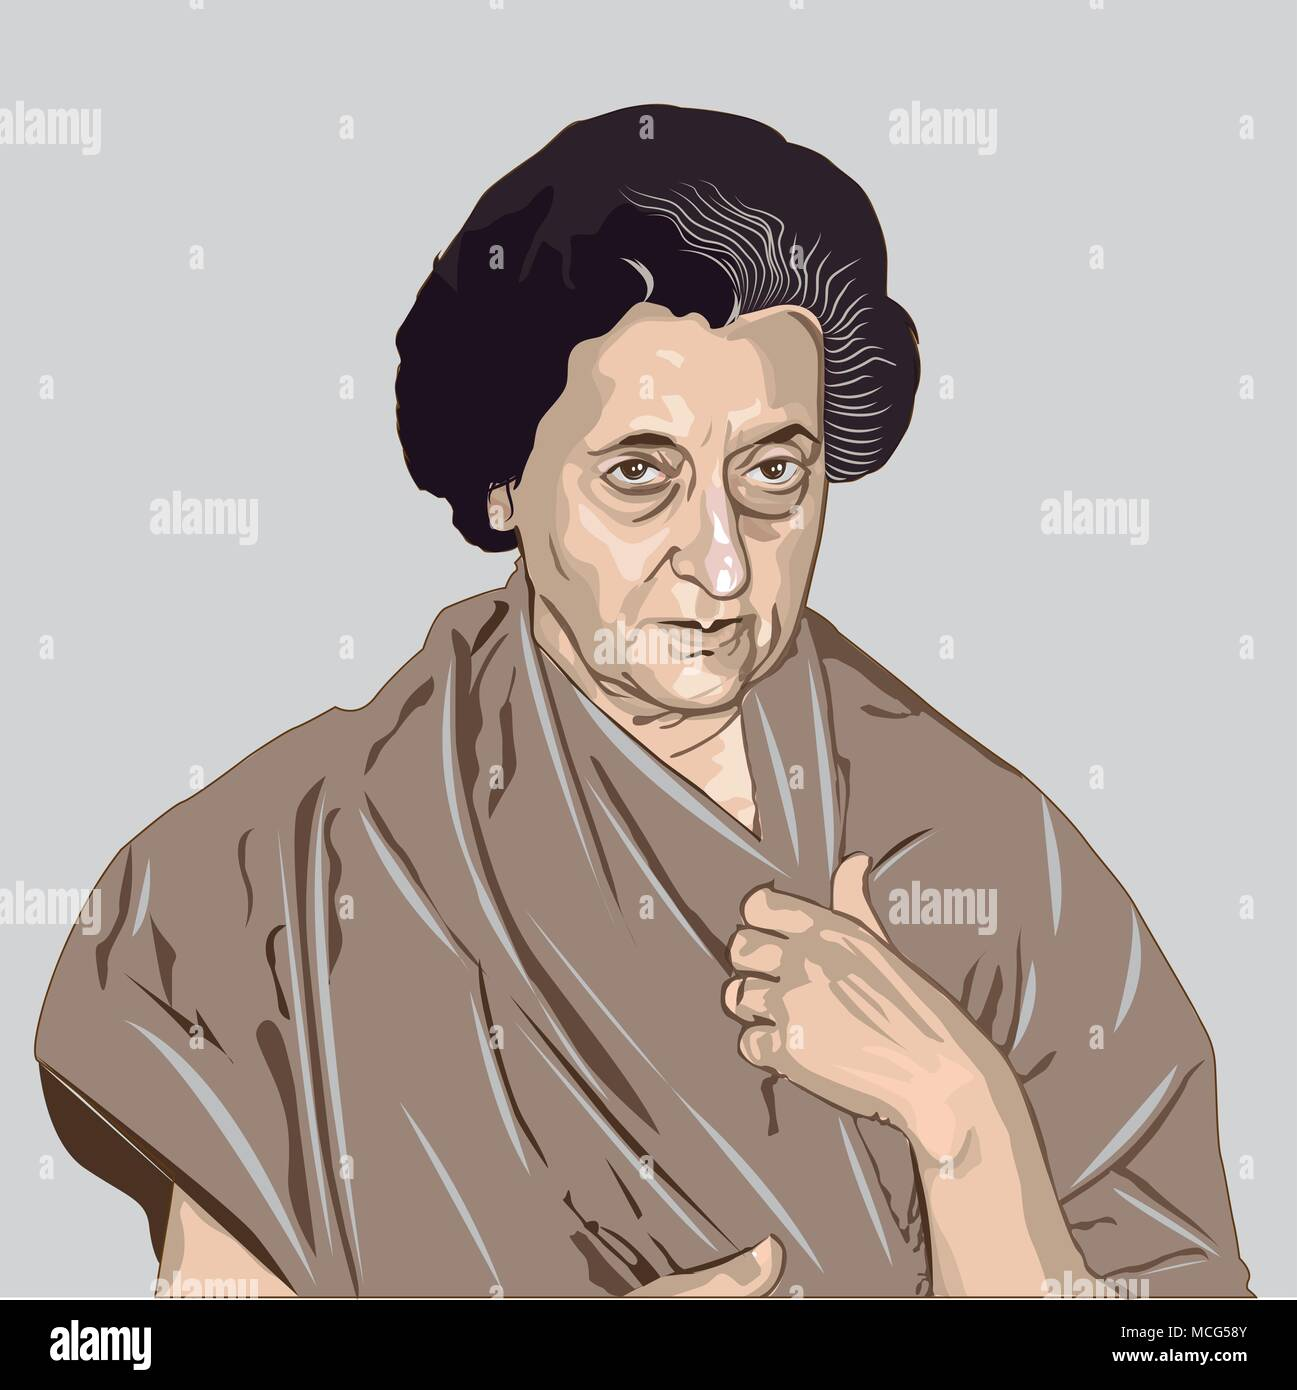 Indira Gandhi (1917-1984) Indian politician and central figure of the Indian National Congress party. The former prime minister of independent India. - Stock Image